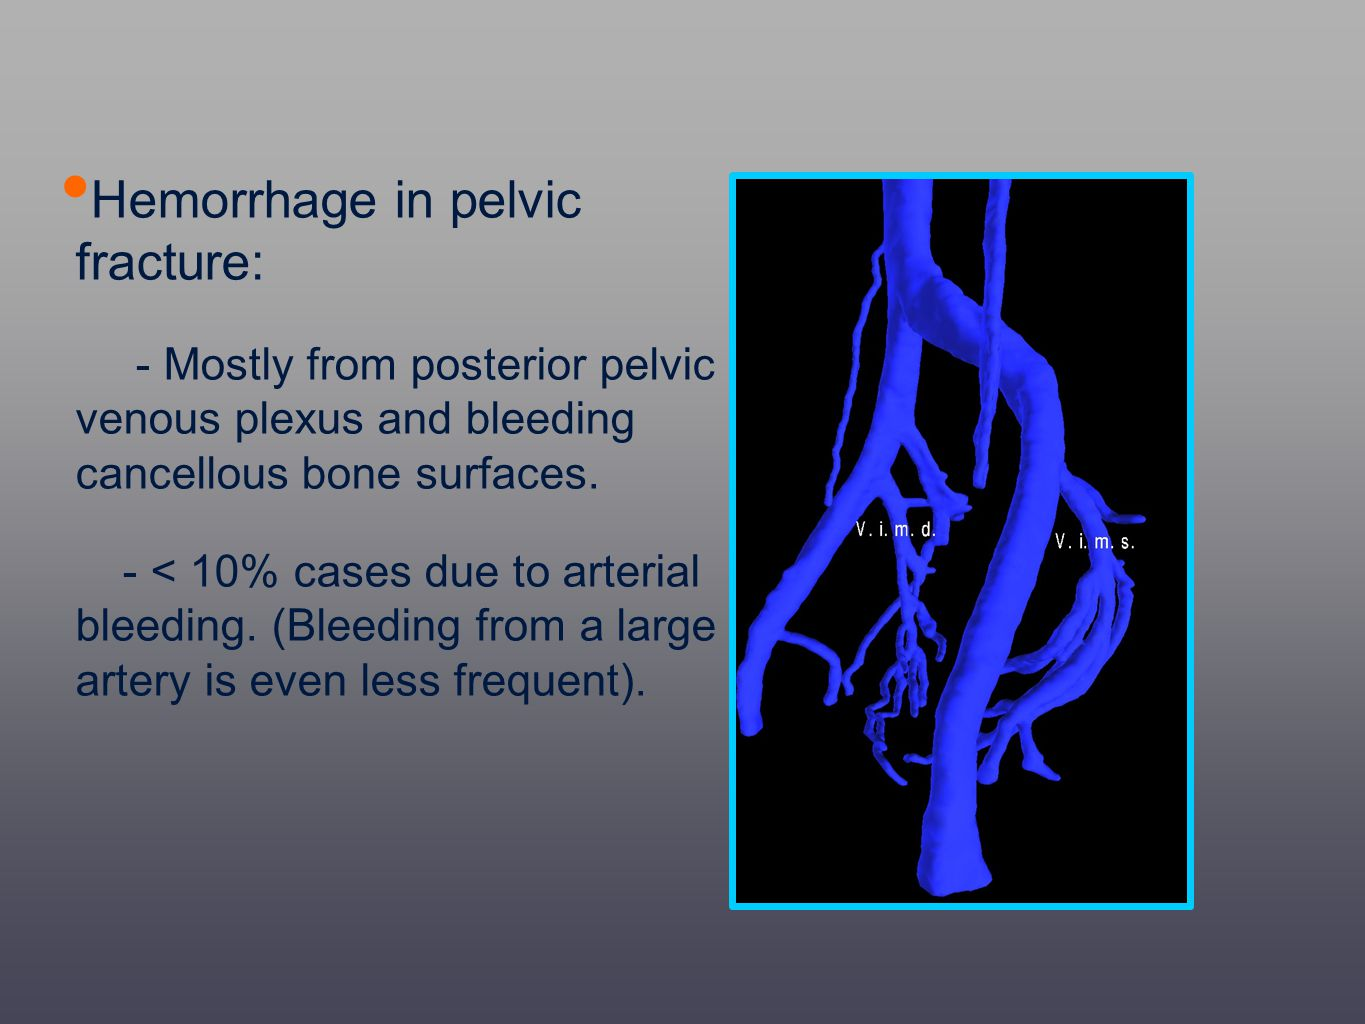 Hemorrhage in pelvic fracture: - Mostly from posterior pelvic venous plexus and bleeding cancellous bone surfaces. - < 10% cases due to arterial bleed